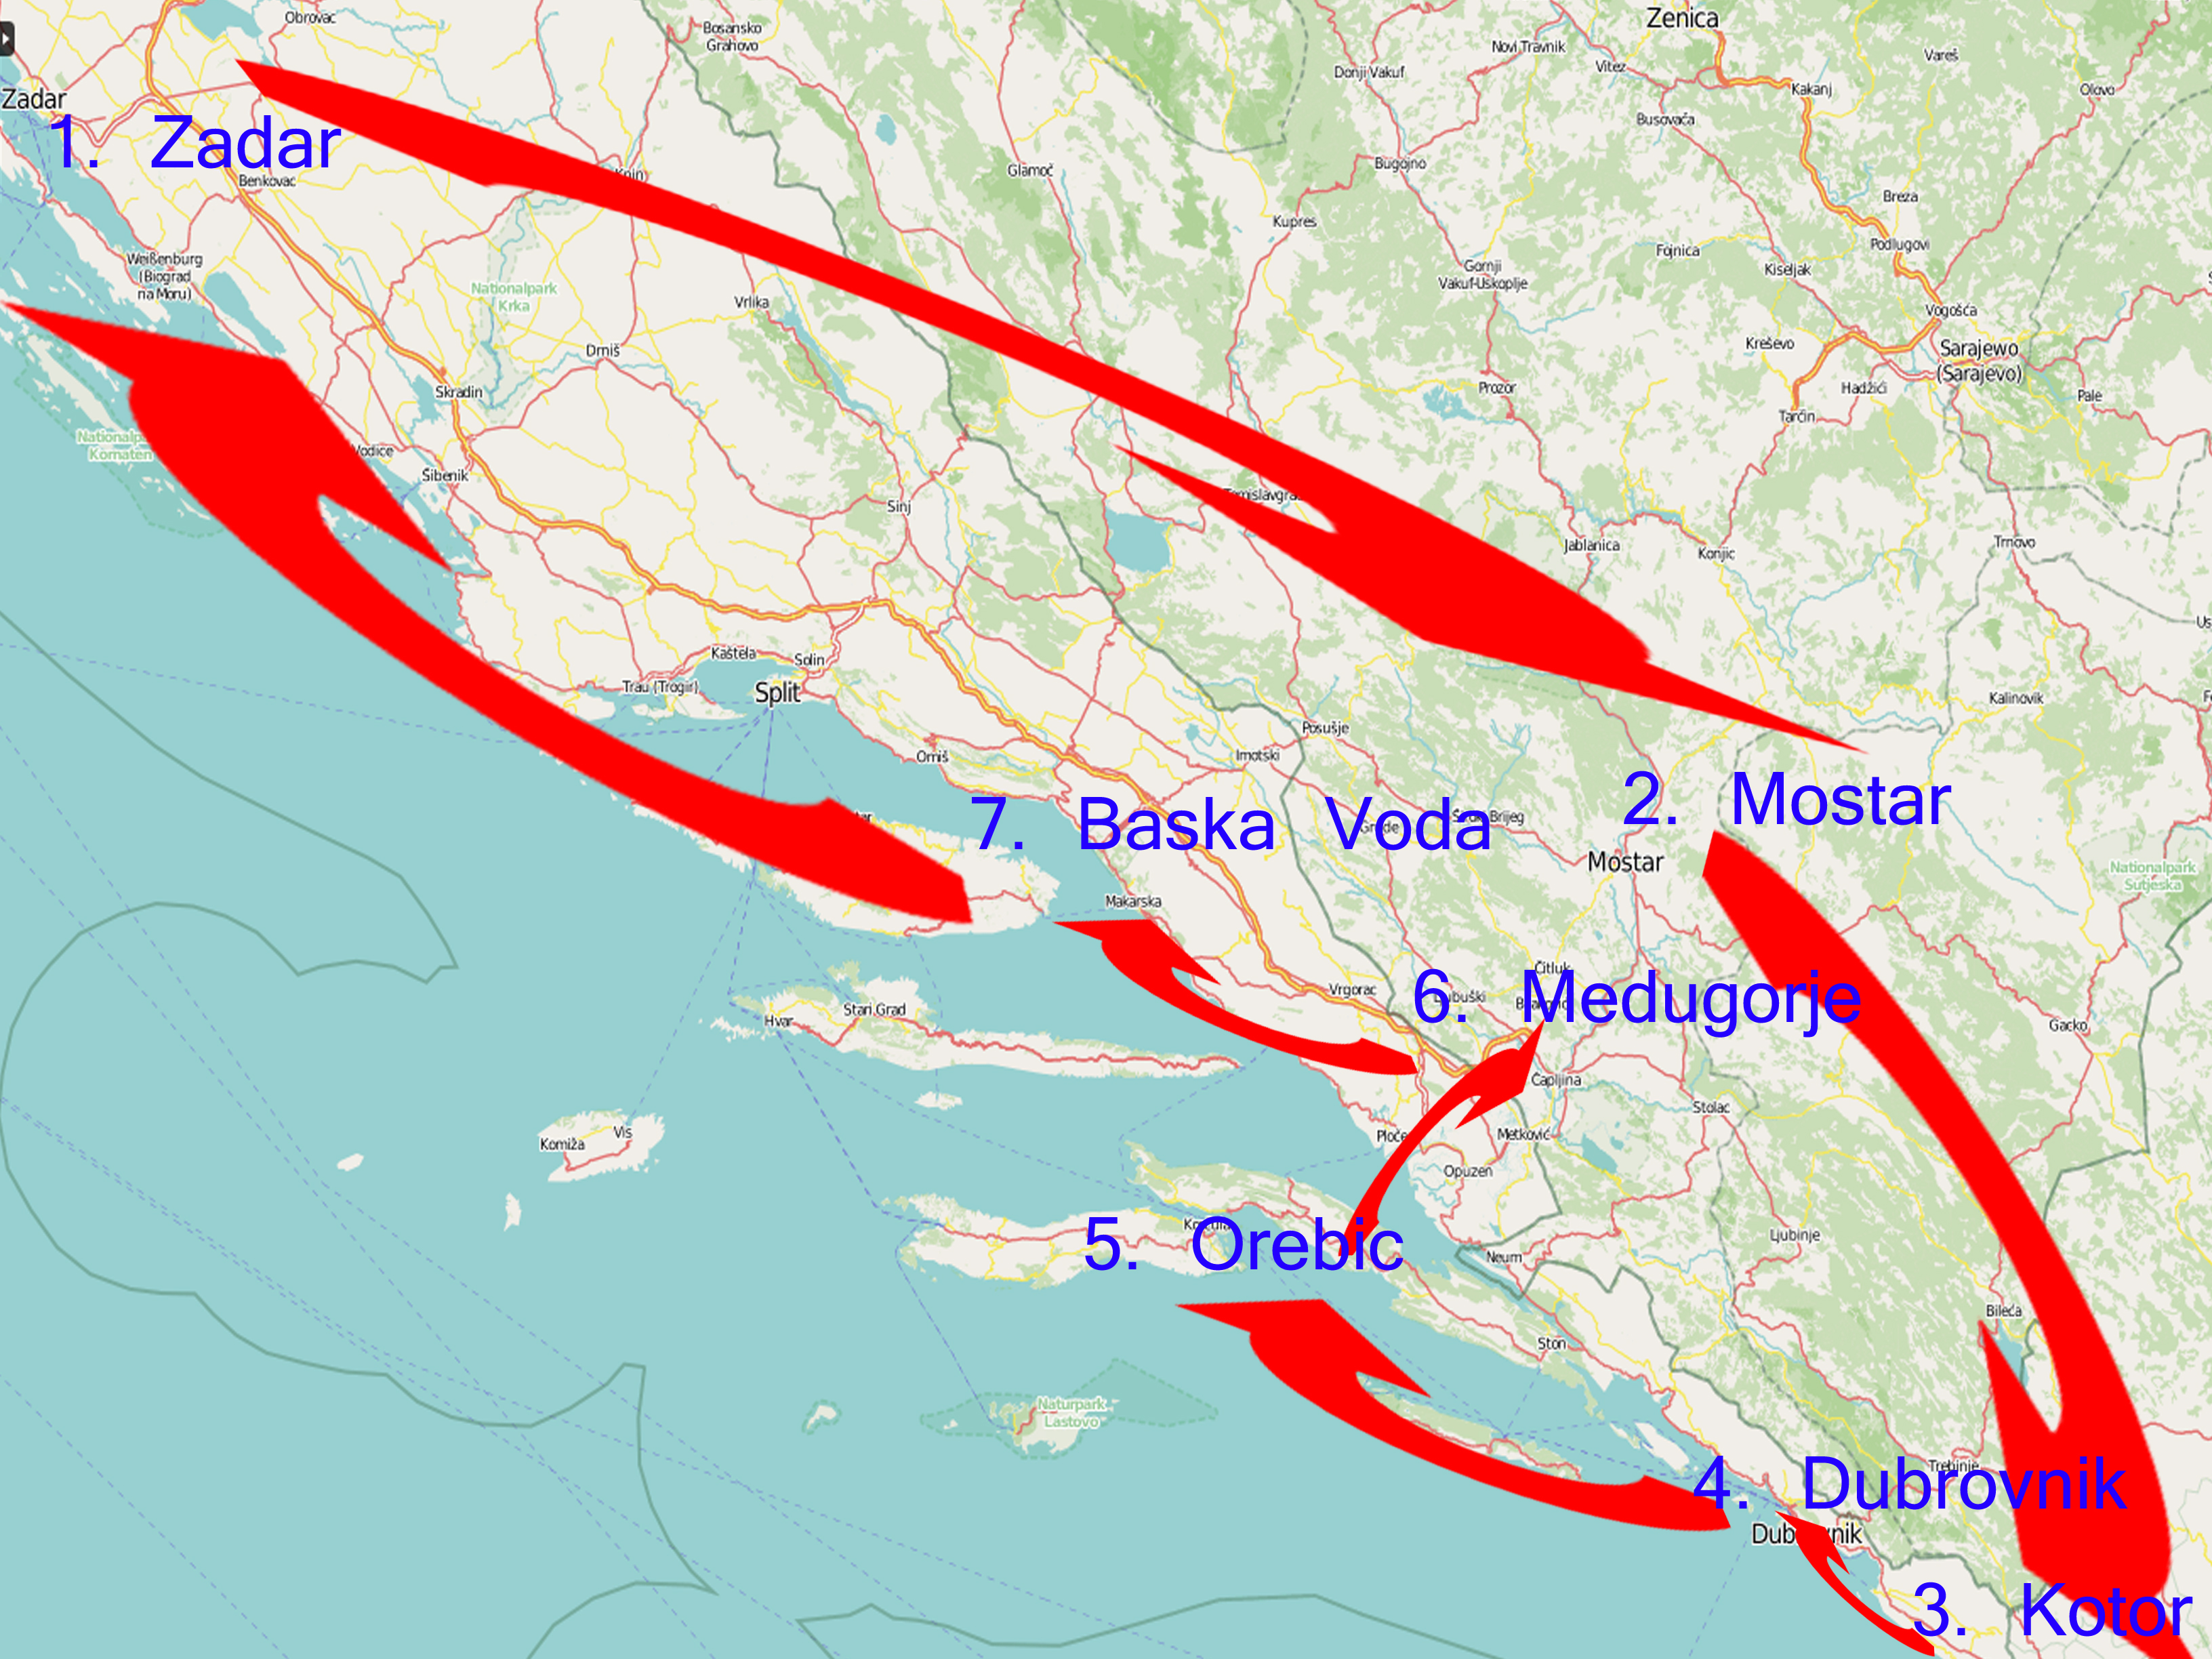 Our itinerary for western Balkans in 10 days!